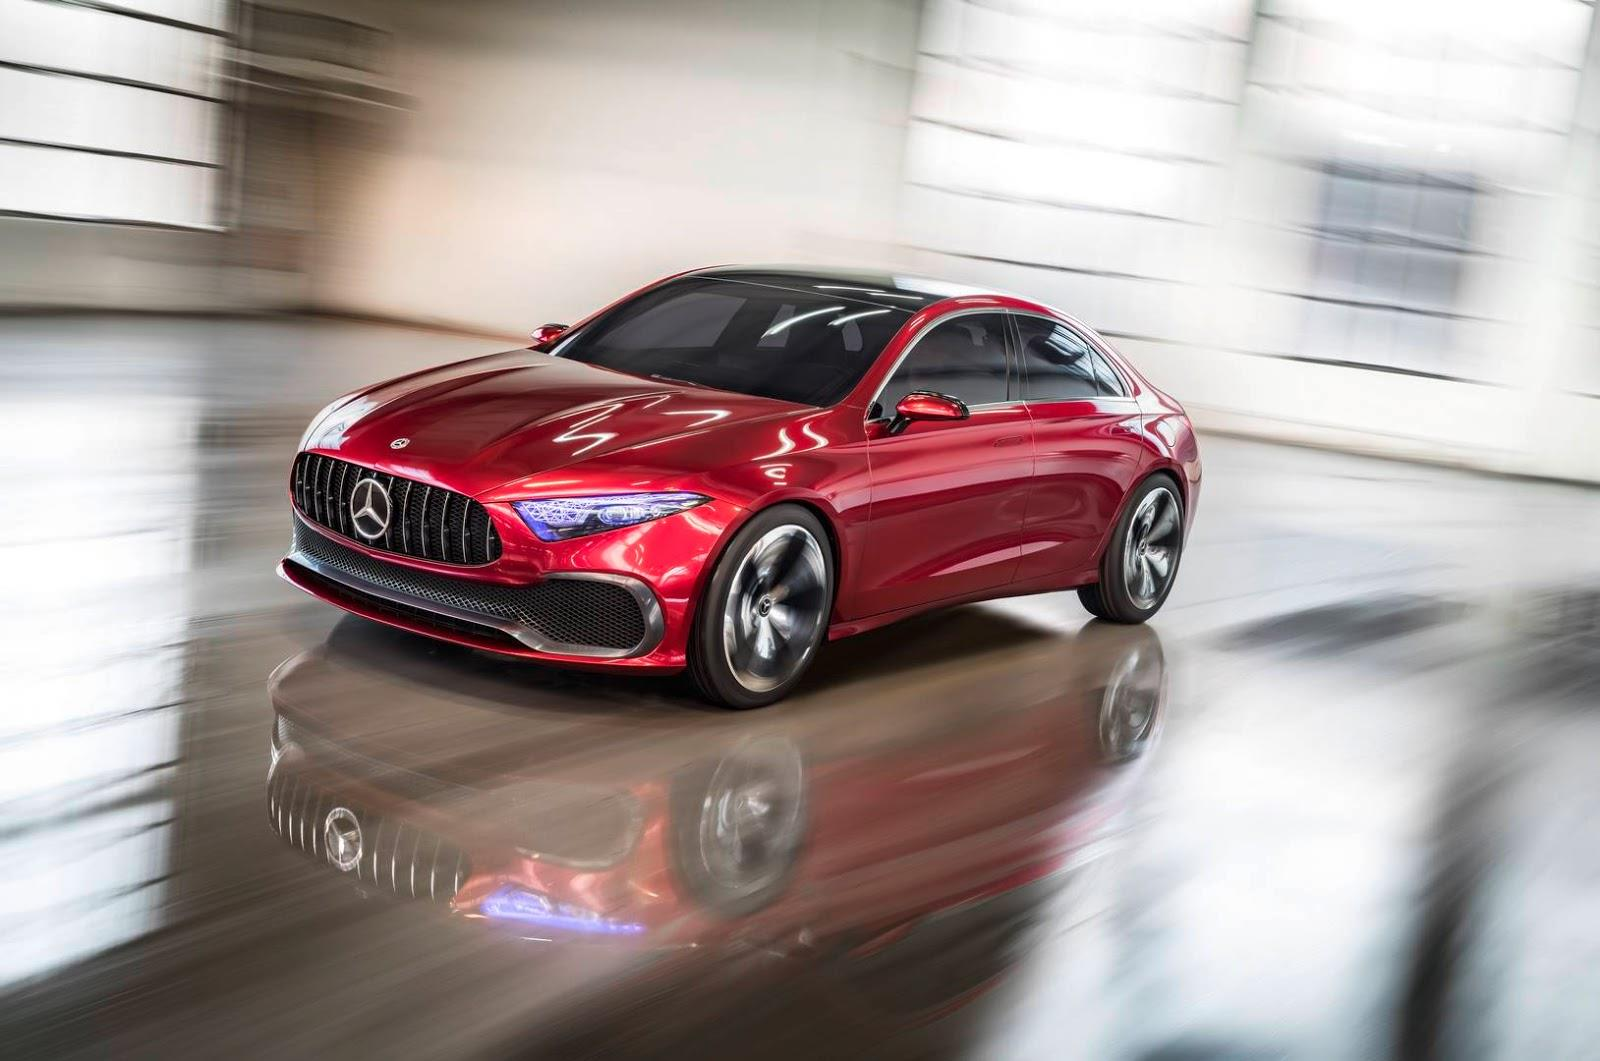 Mercedes Concept A Sedan image gallery